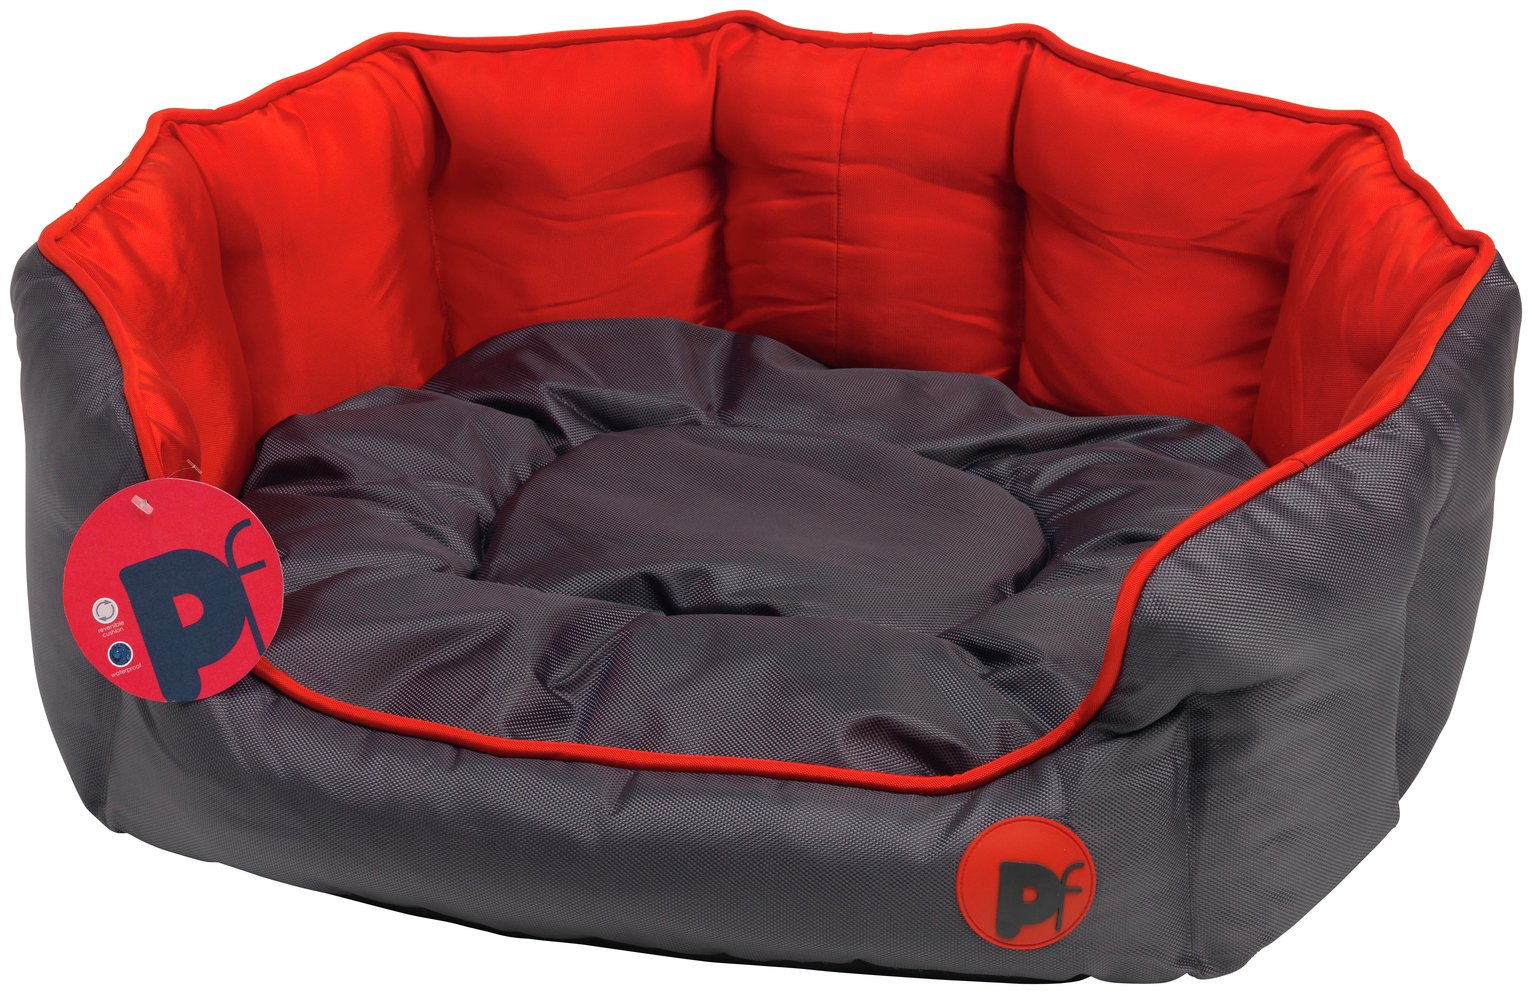 Petface Red Oxford Dog Bed - Medium from Petface